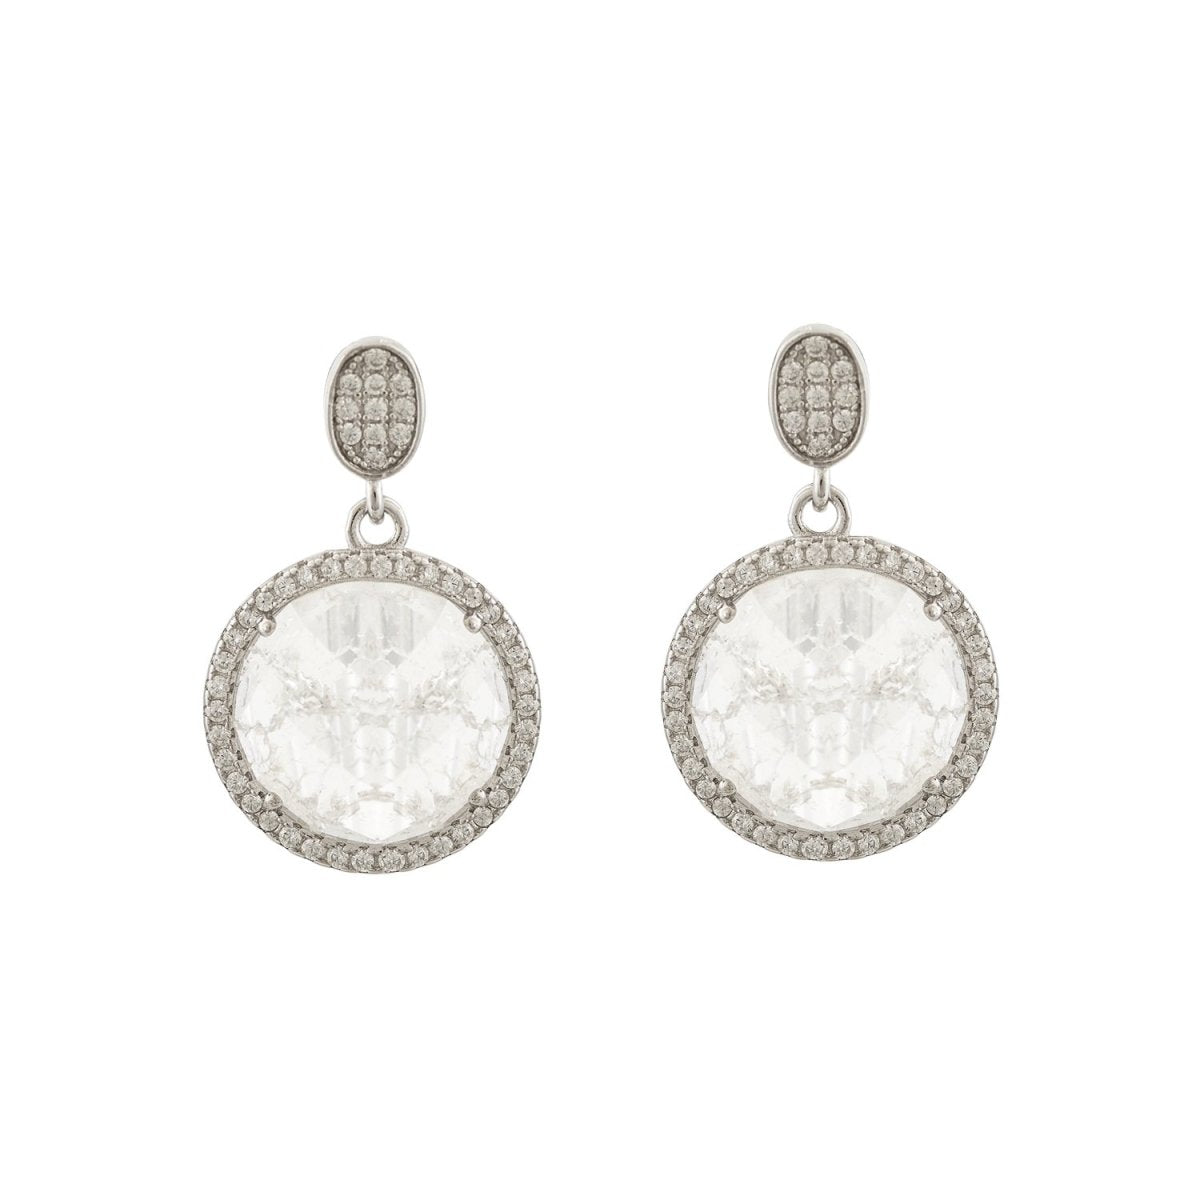 Earrings ES1924 Pendant with Platinum Silver - Goldy Jewelry Store